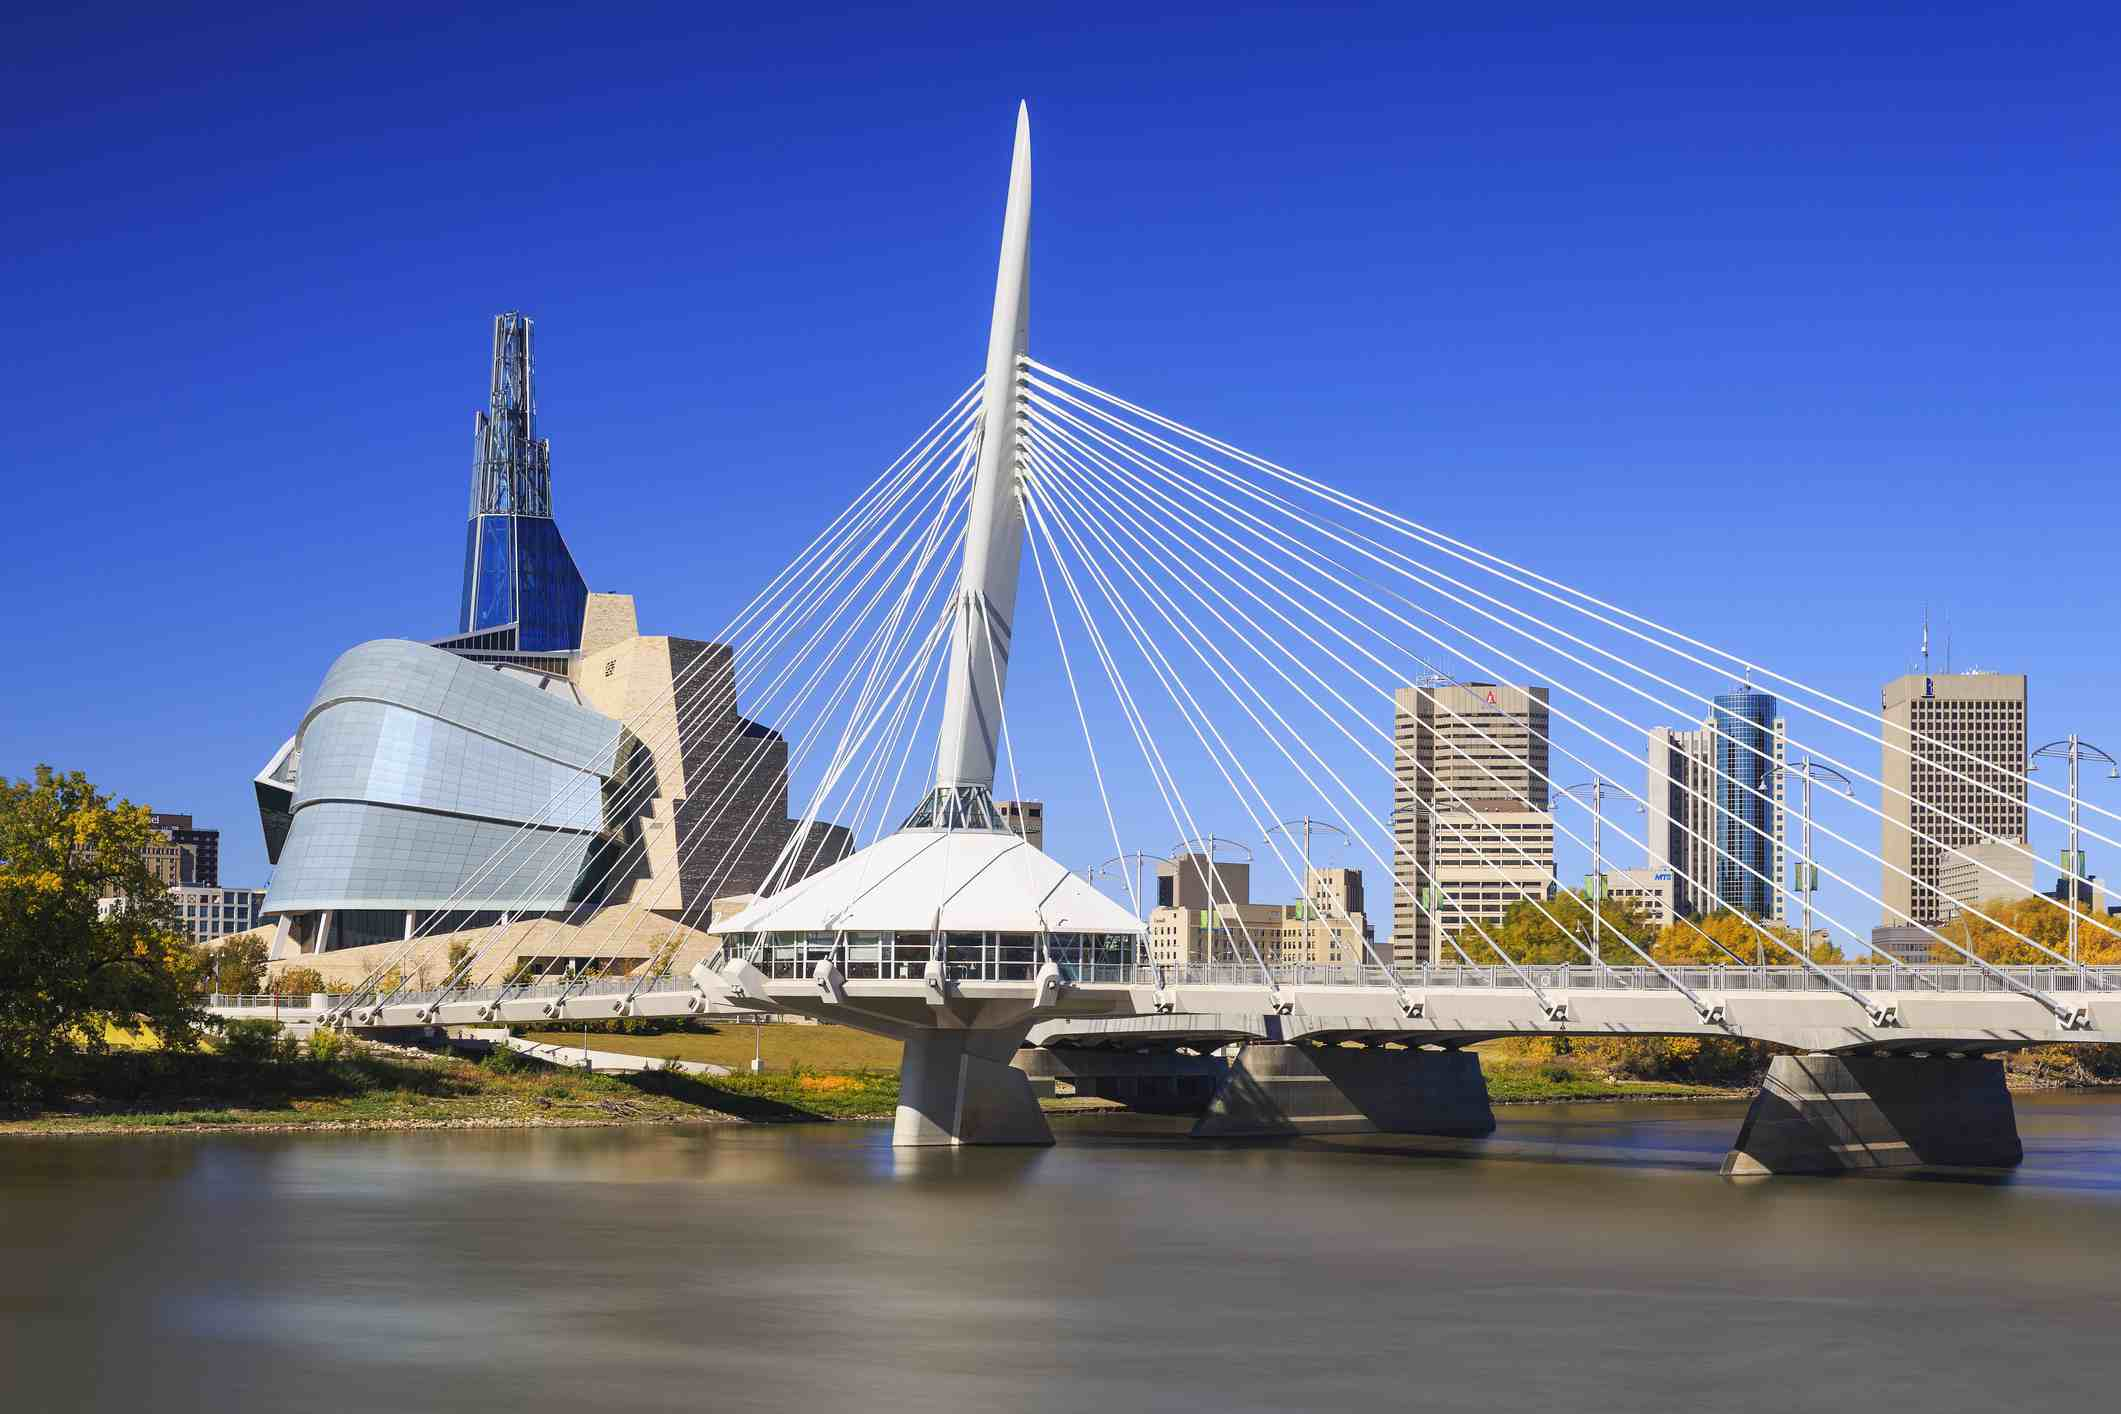 City skyline with Esplanade Riel bridge and Canadian Museum for Human Rights